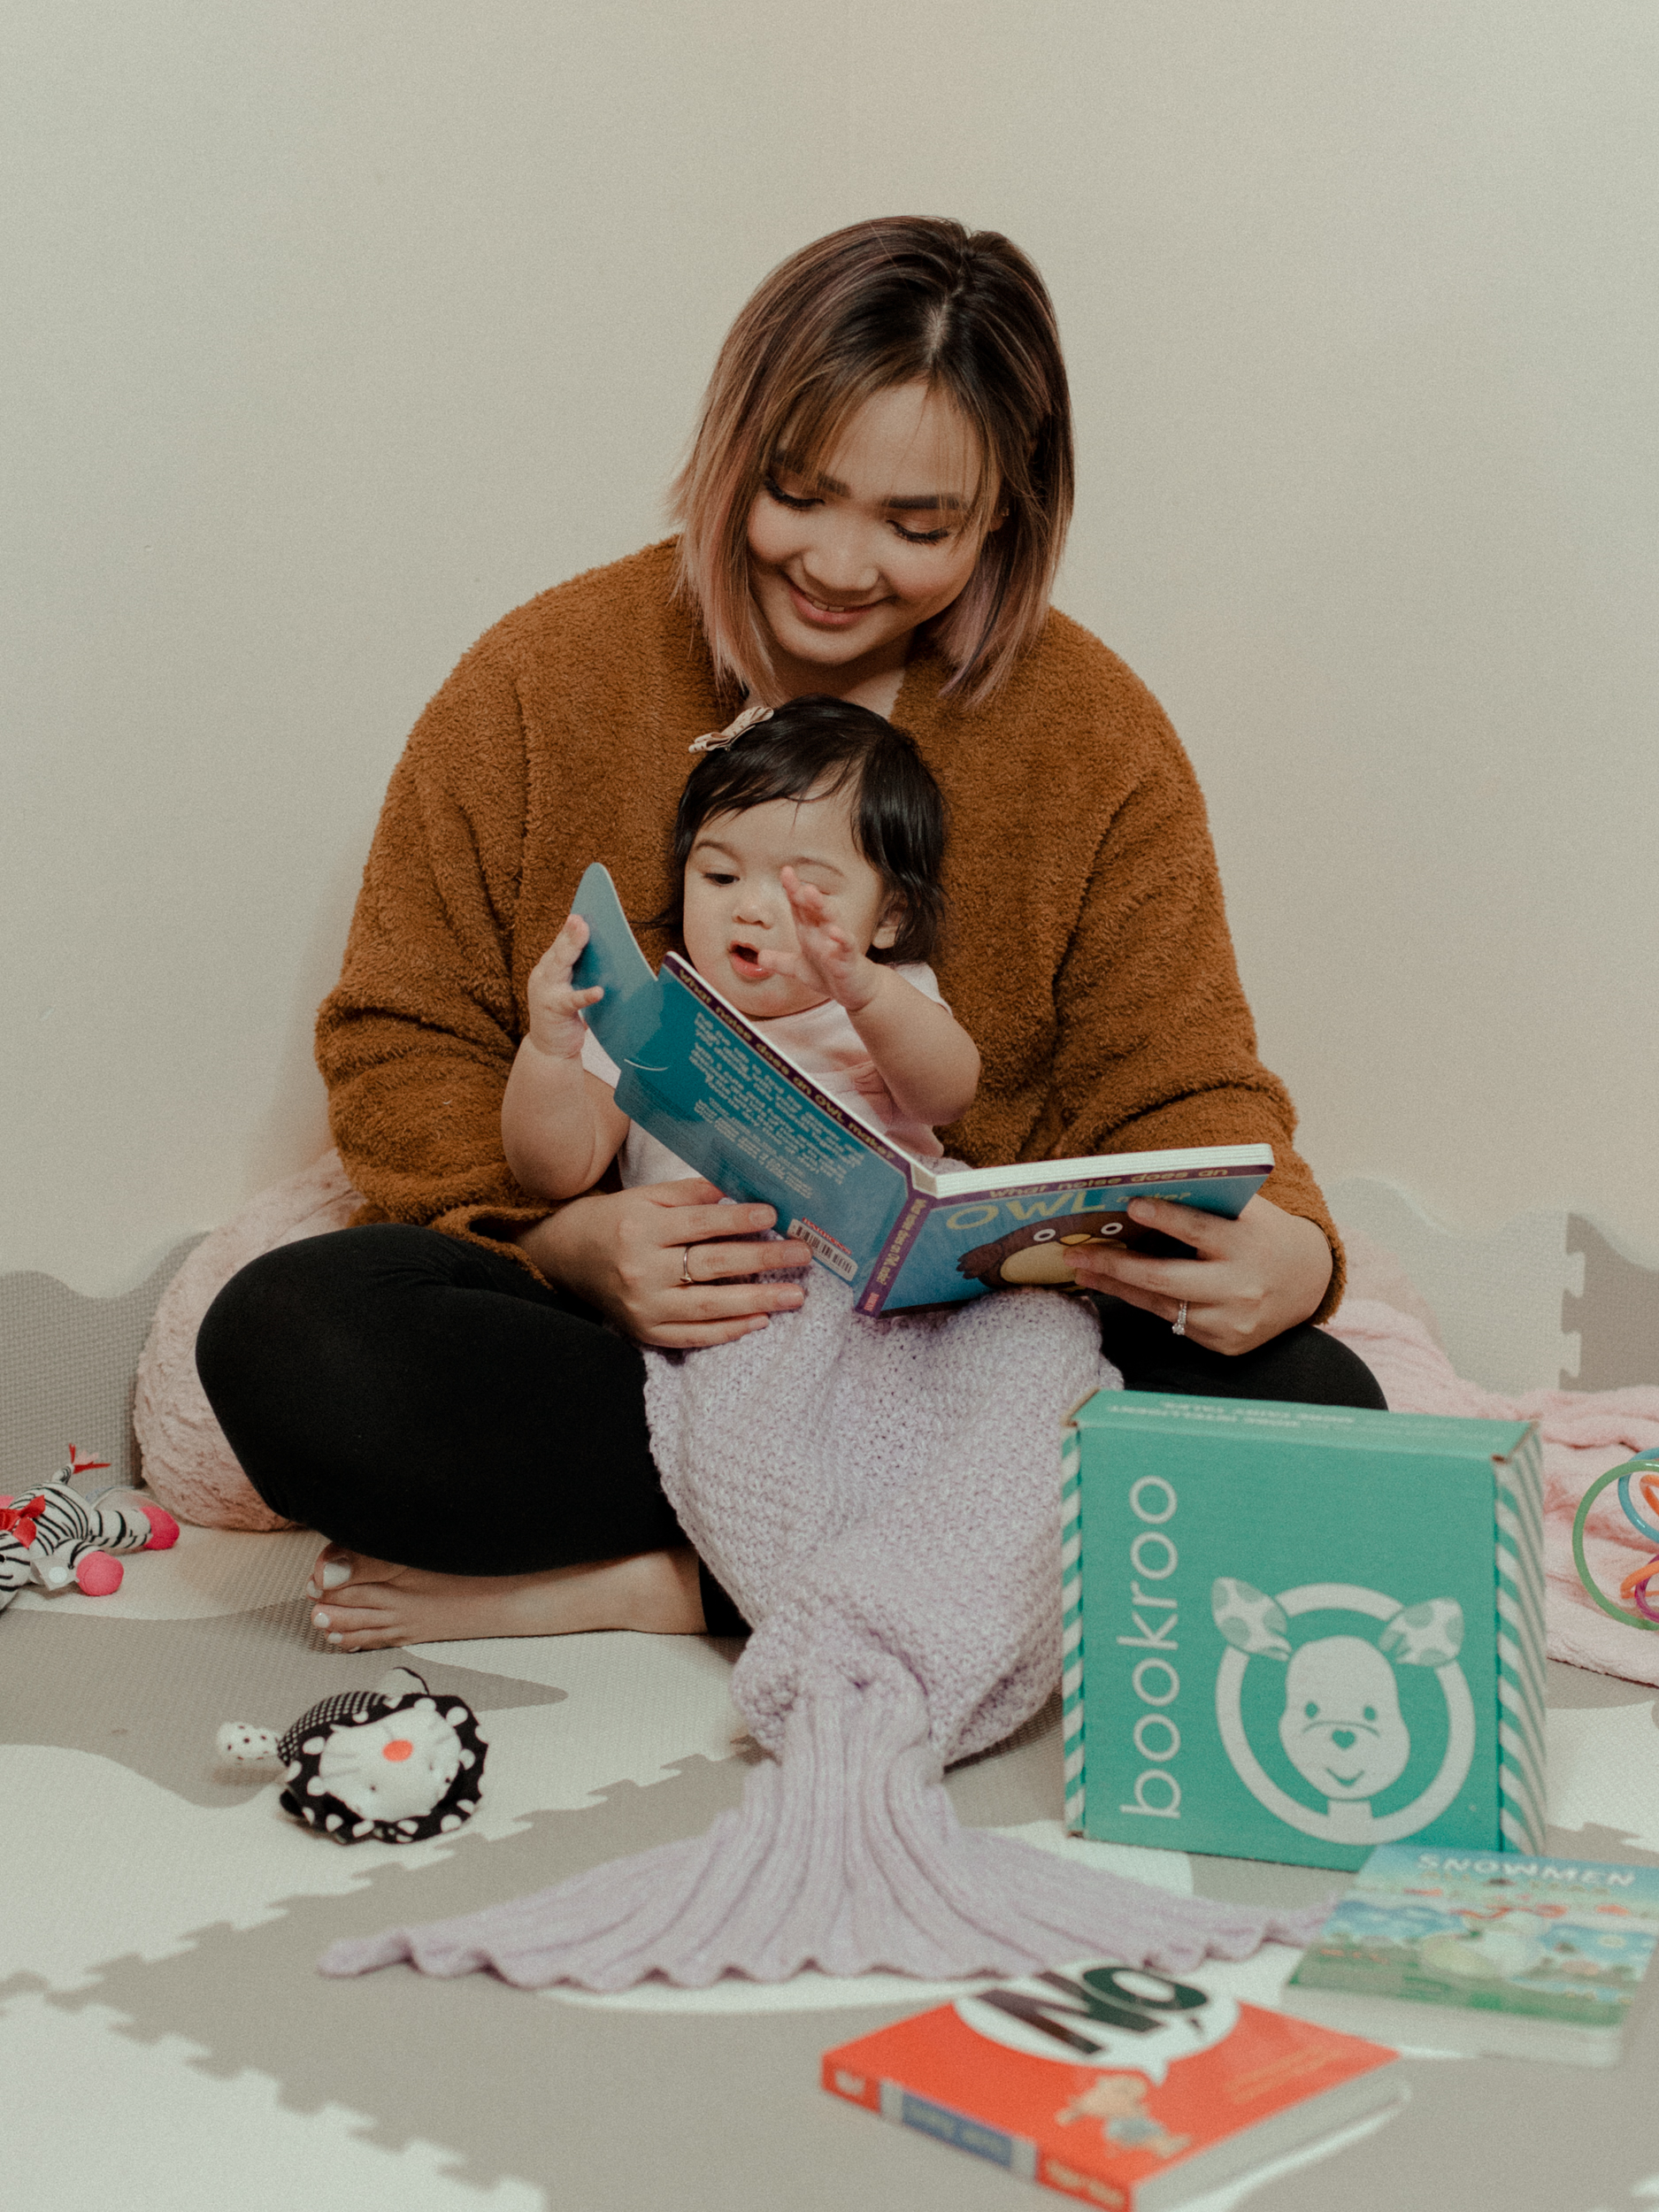 15% off code:corinthsuarez - Get your little one's first Bookroo box today and use my code for 15% off your order!